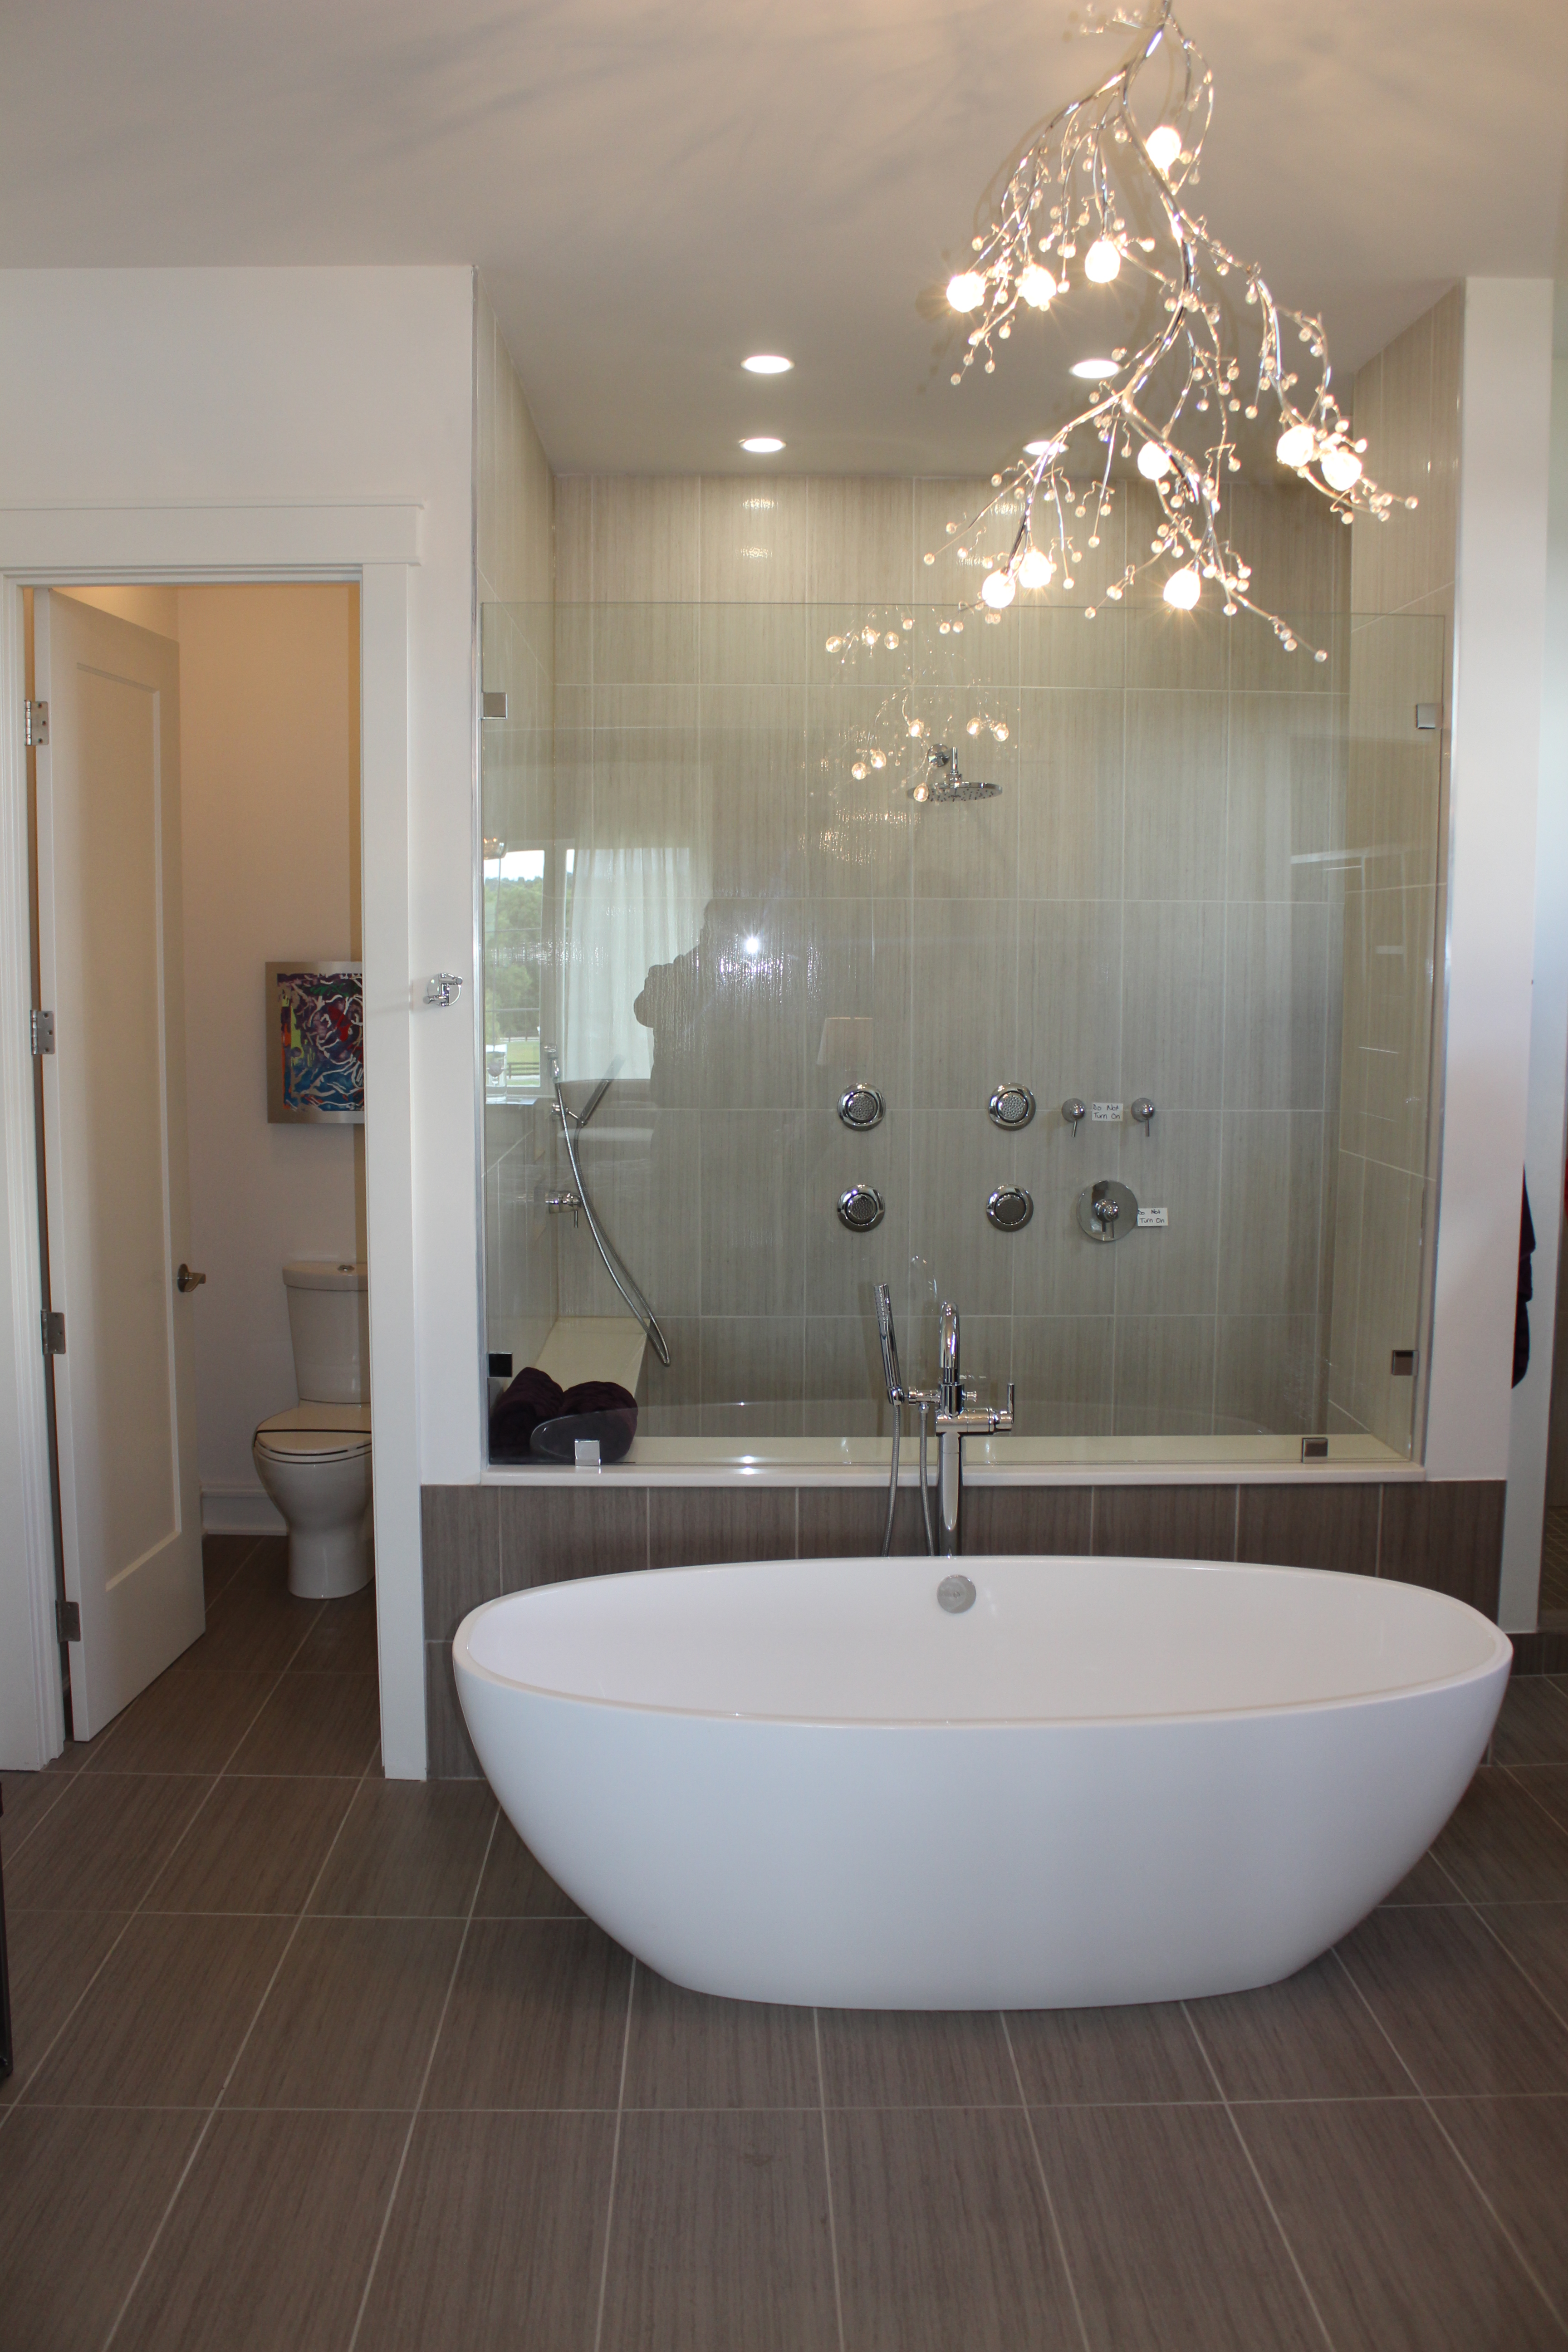 When remodeling bathroom where to start - Don T Put Off The Bathroom Renovation You Have Been Dreaming Of When You Can Get Started Today Our Bathroom Remodeling Contractor Cares Deeply Each Project